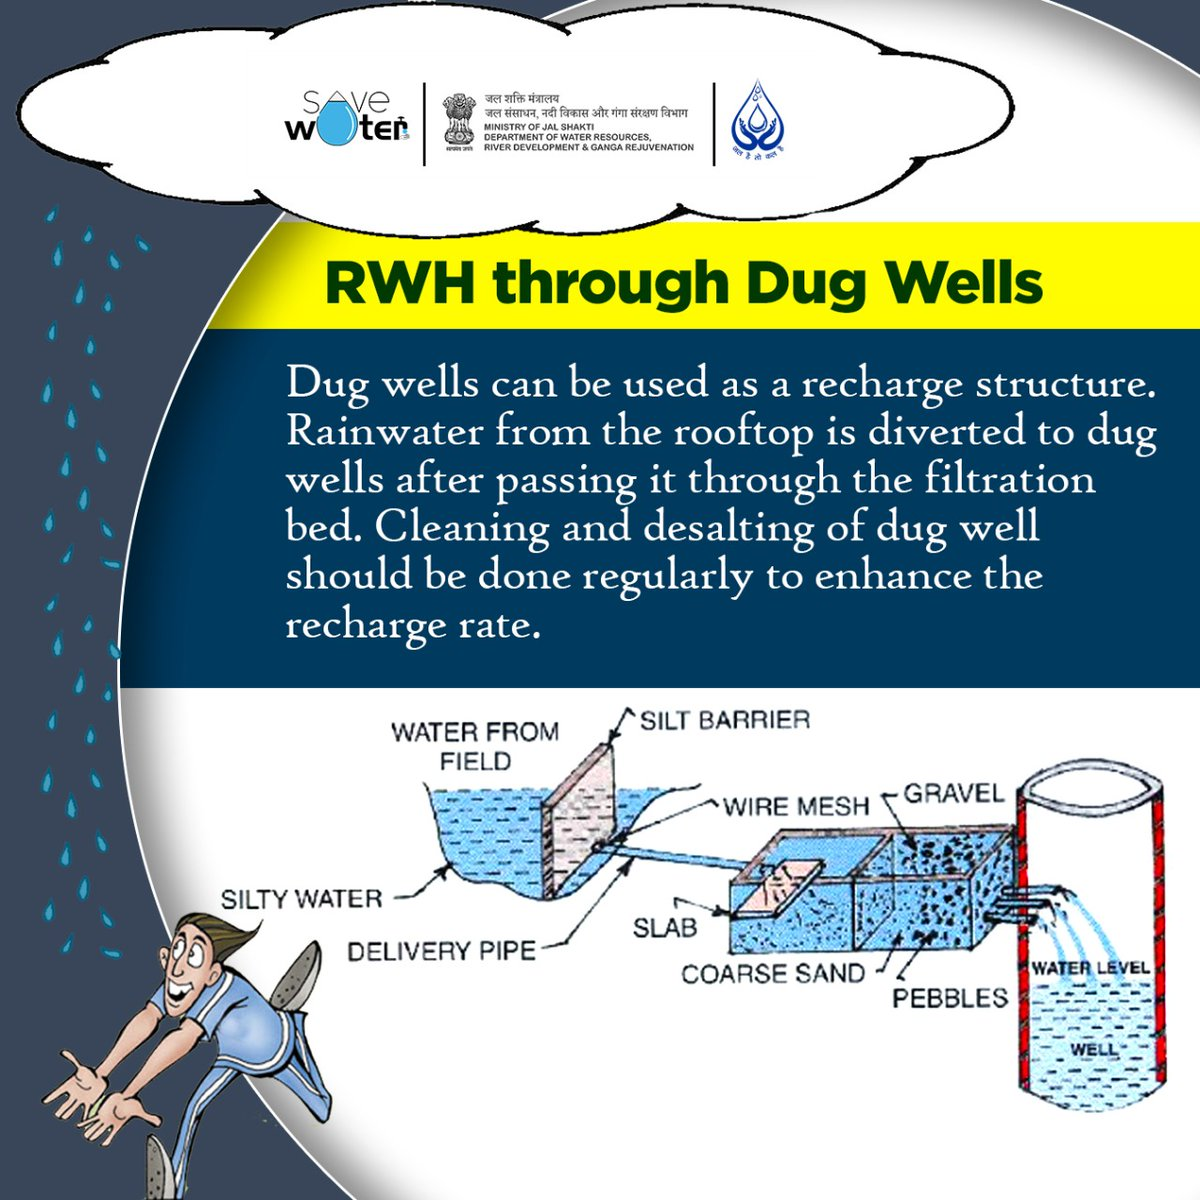 🌧️Let's CATCH THE RAIN this monsoon!!   Dug wells are holes in the ground dug by shovel or backhoe. They are lined with stones, brick, tile, or other material to prevent collapse.  #Monsoon2020 #RainwaterHarvesting https://t.co/Ct4NZFyobA